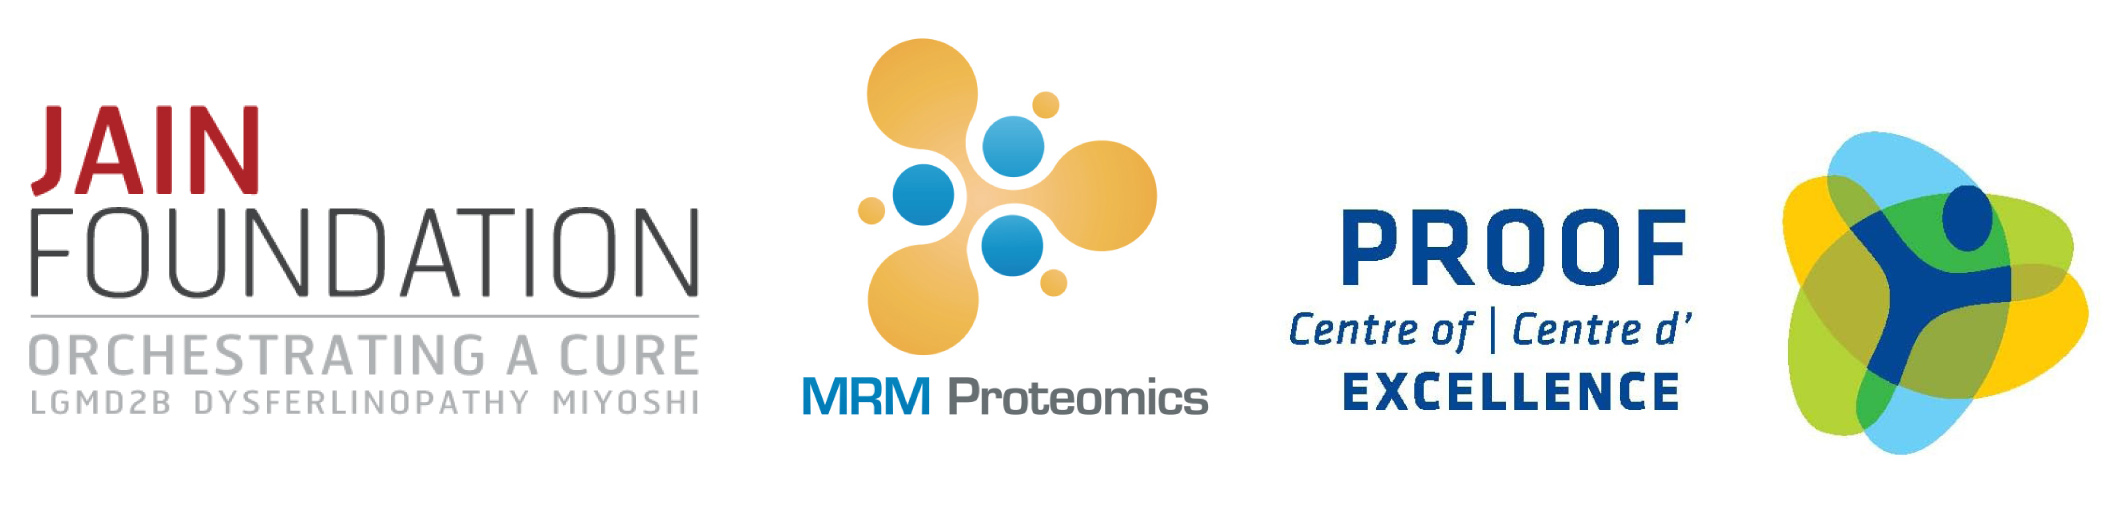 PROOF Centre and MRM Proteomics Collaborate with the Jain Foundation to Identify Blood-Based Biomarkers of LGMD2B/Miyoshi Muscular Dystrophy